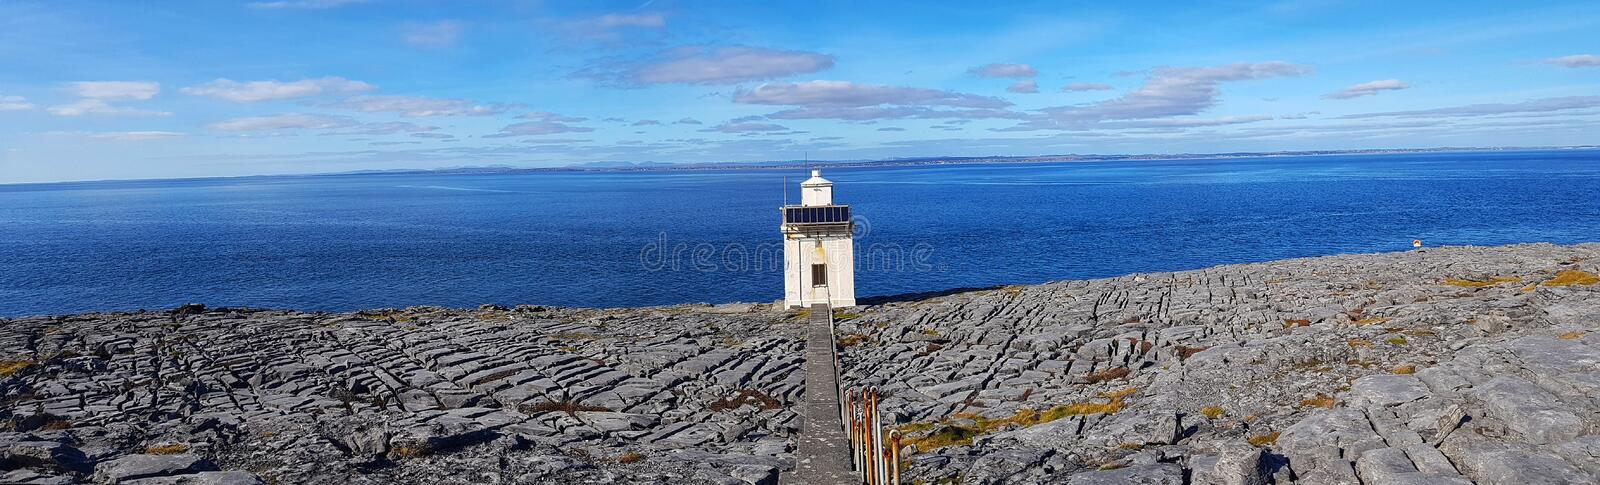 Black head county clare ireland. the burren national park along the wild atlantic way on the geopark geotourism route. Beautiful irish countryside landscape stock images